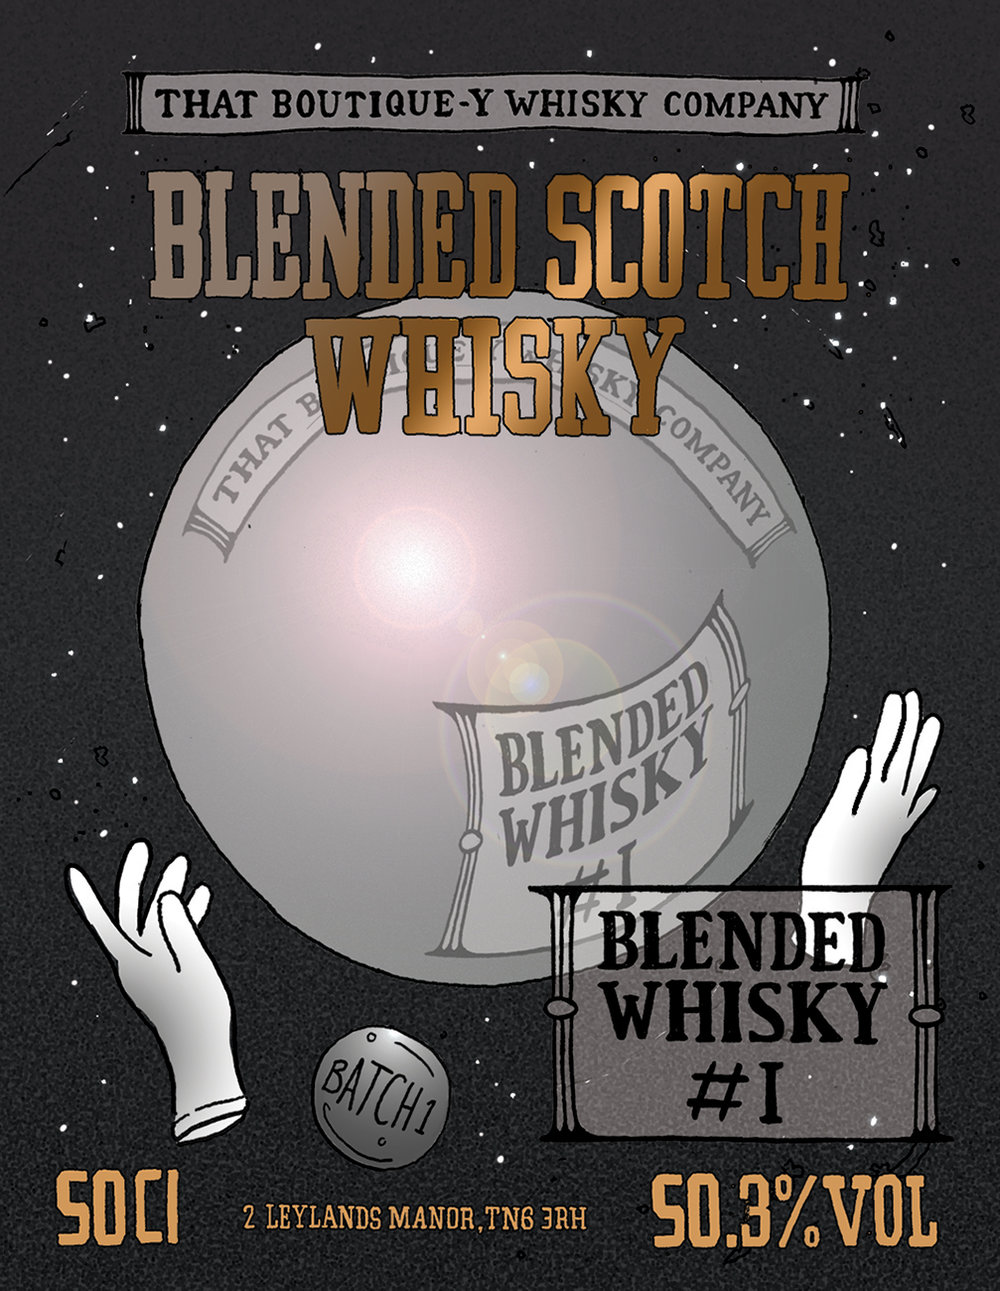 Blended Scotch Whisky 1 B1.jpg